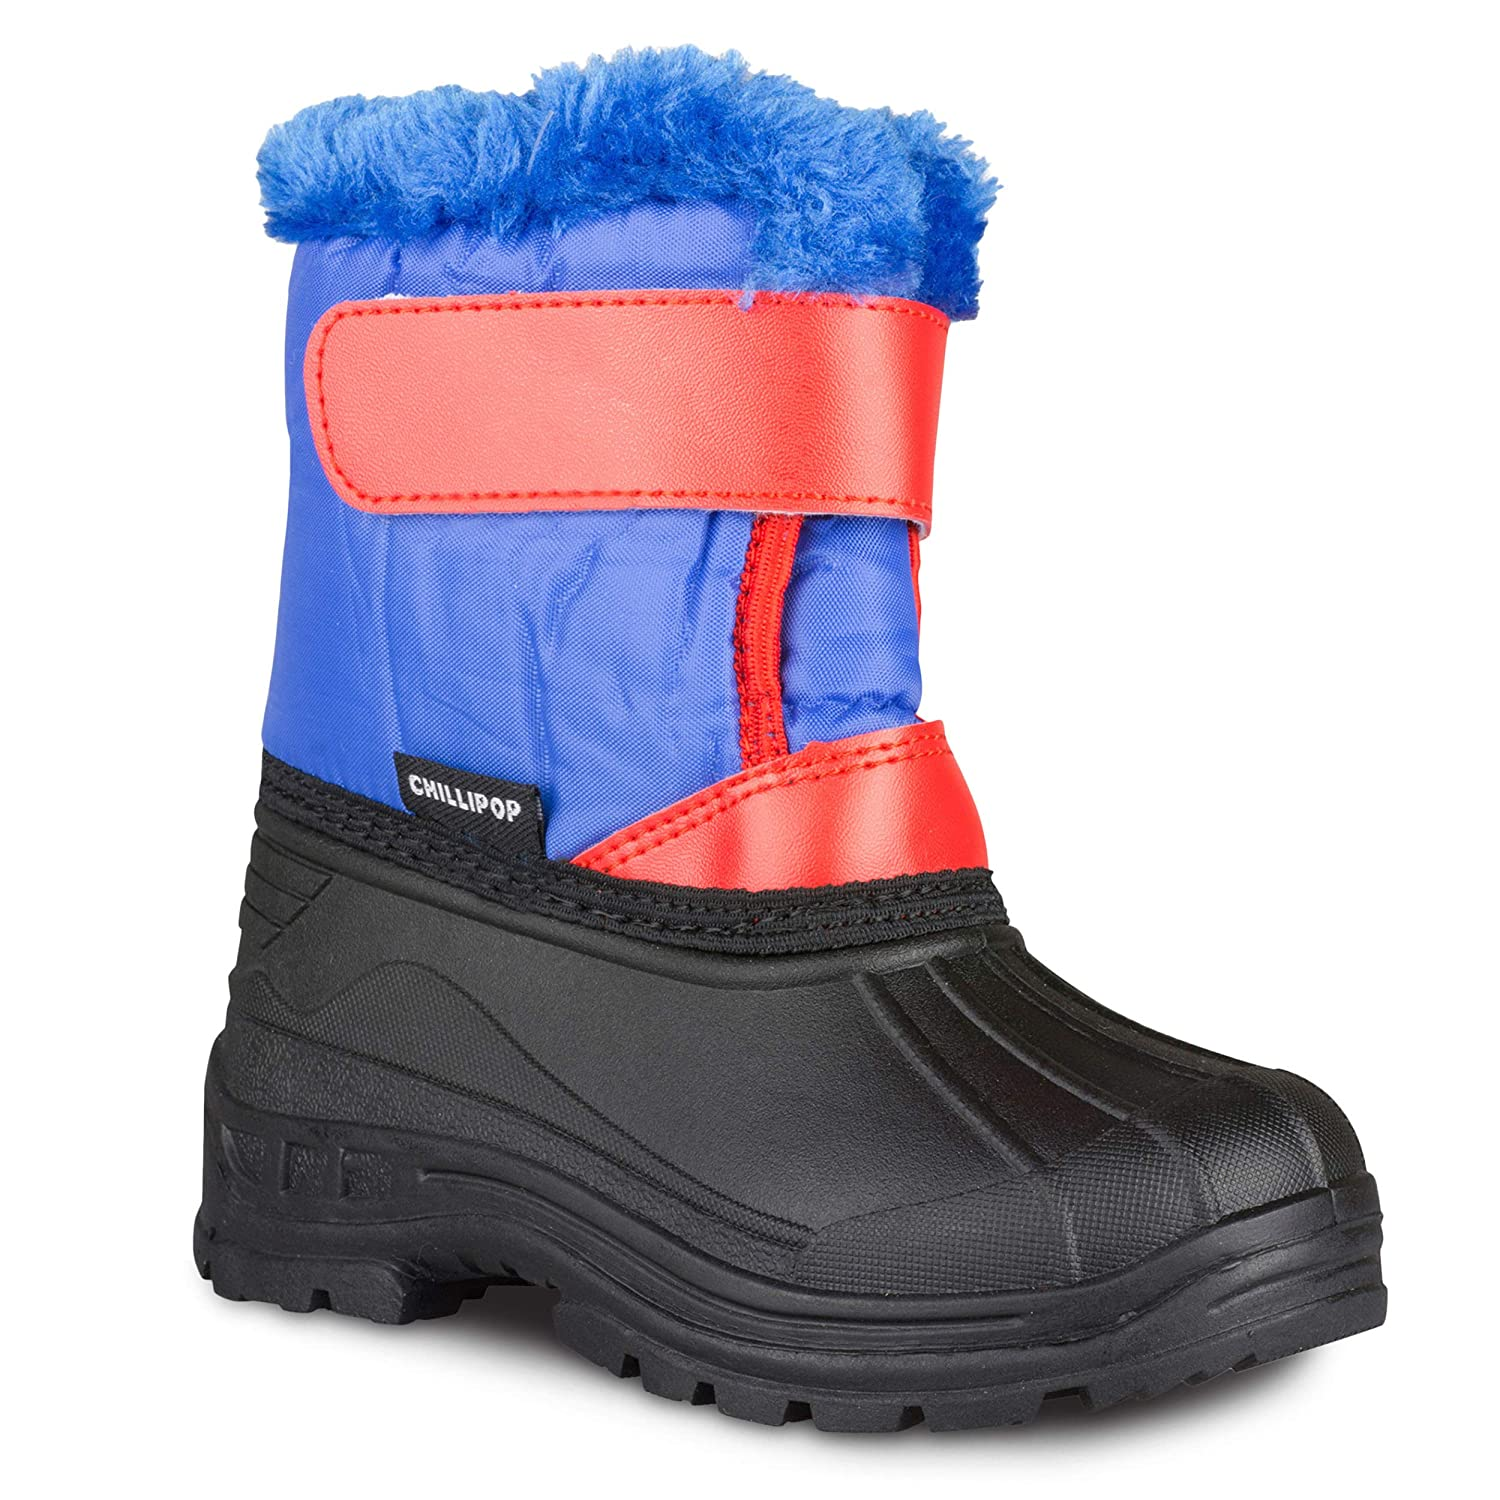 20a1a17d463 Chillipop Colored Insulated Snow Boots for Boys, Girls, Little Kids